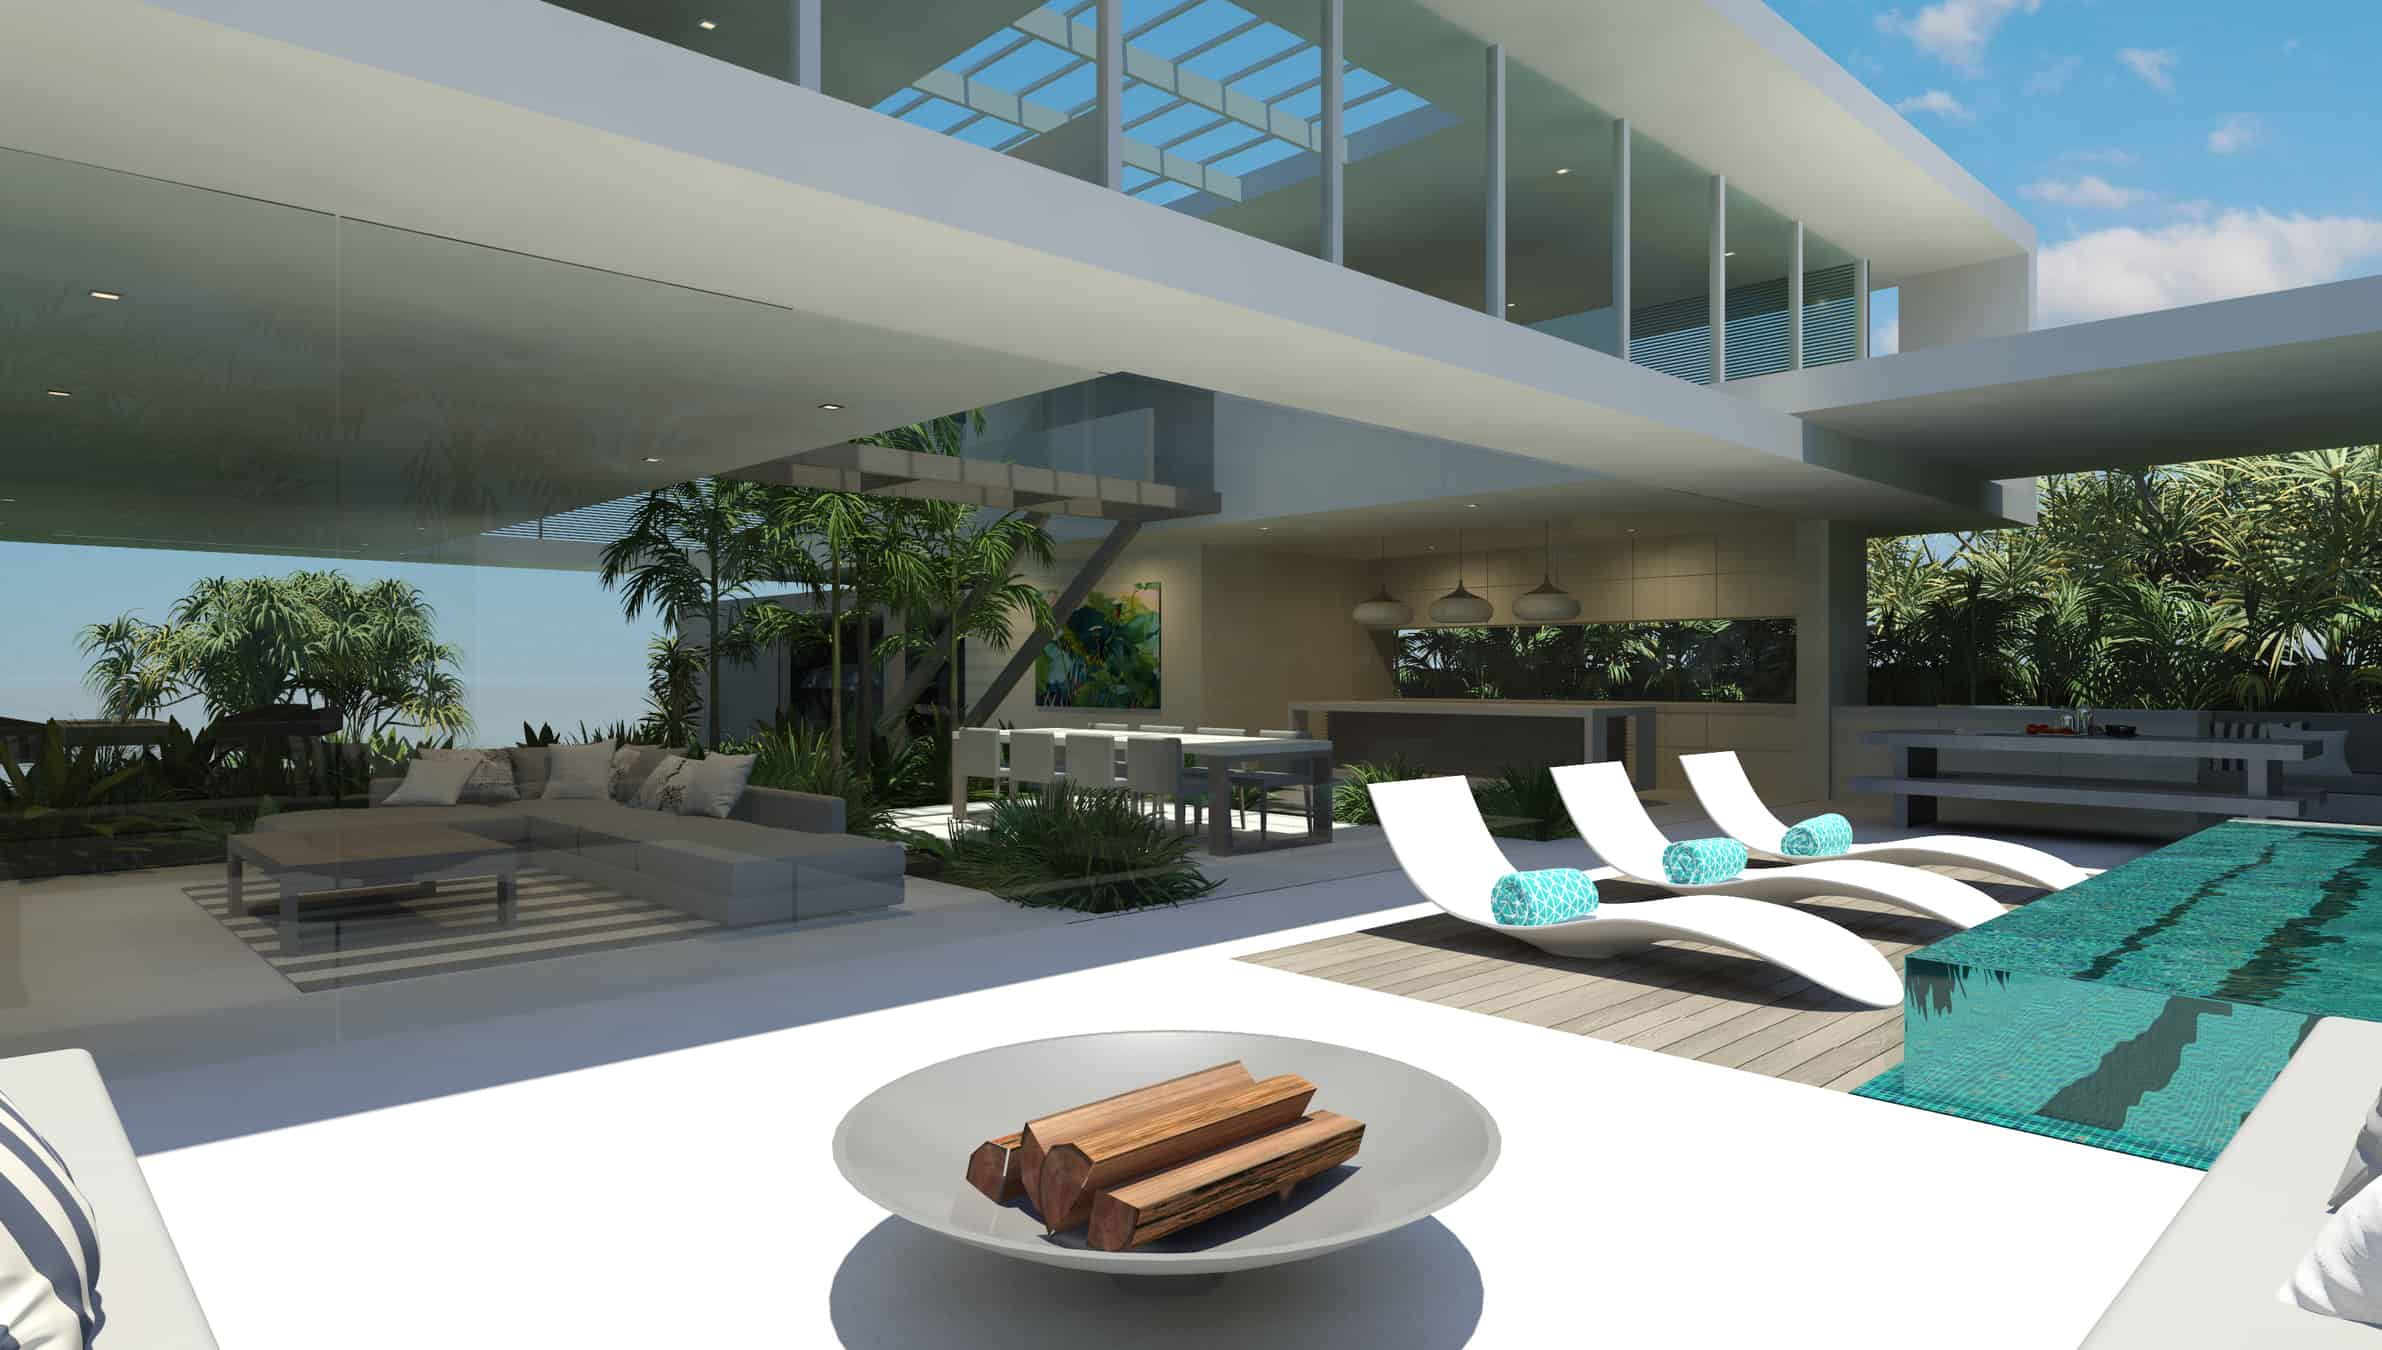 Chris Clout Design: Its Contemporary Square Beach Style